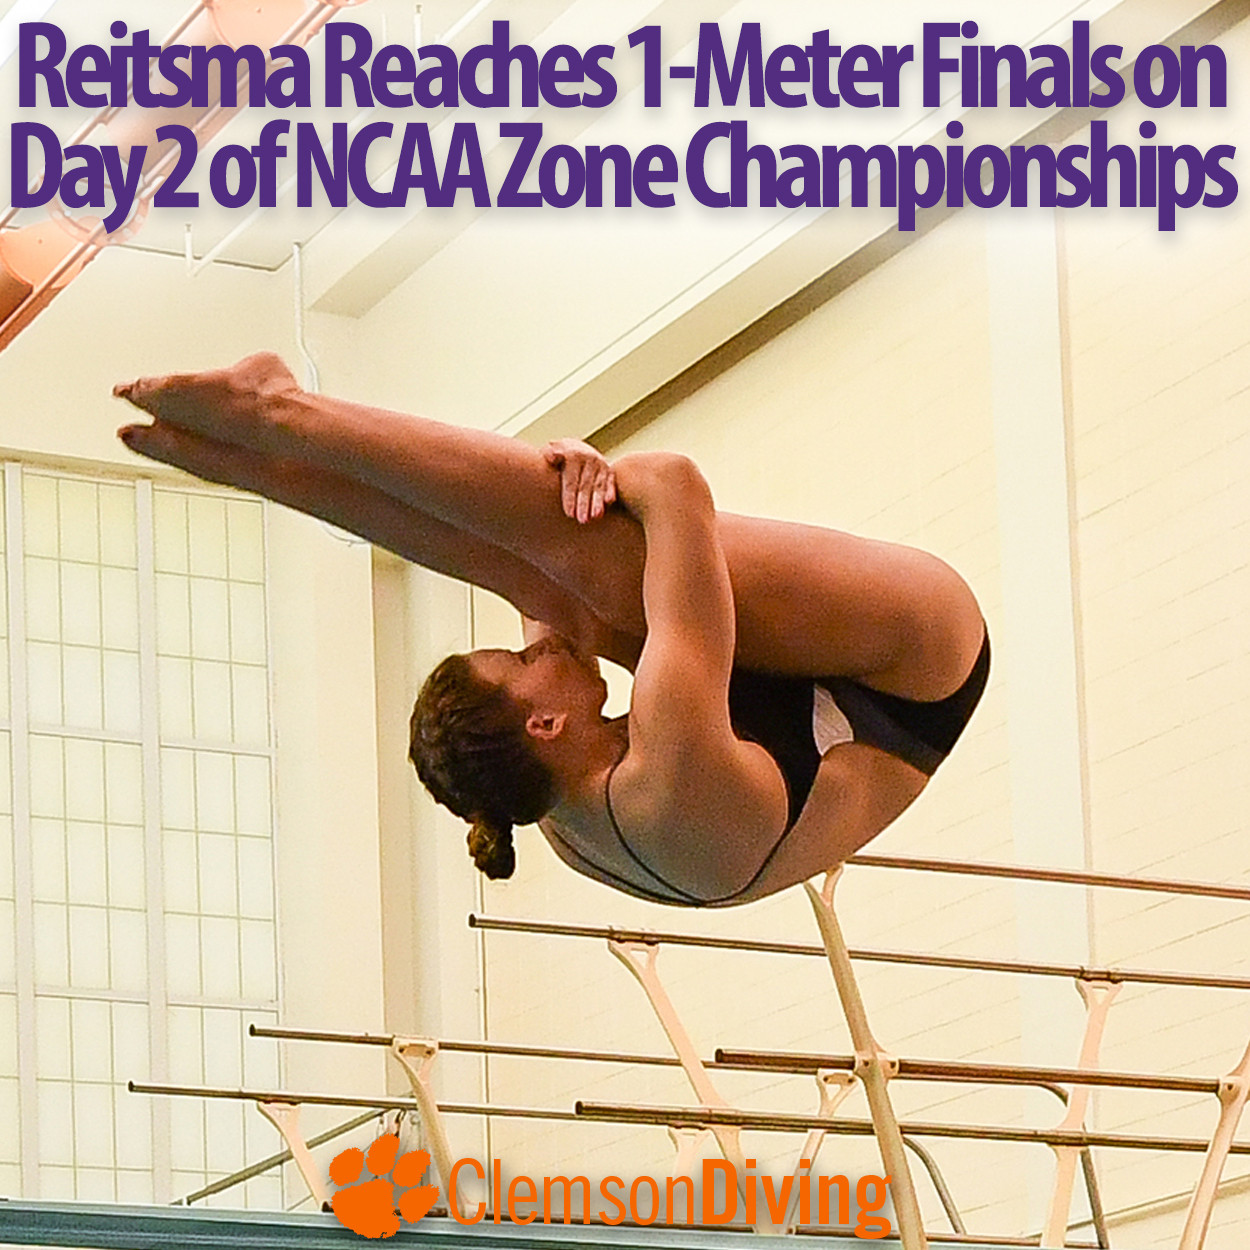 Reitsma Qualifies for Finals, Finishes 18th in One-Meter at NCAA Zones Tuesday